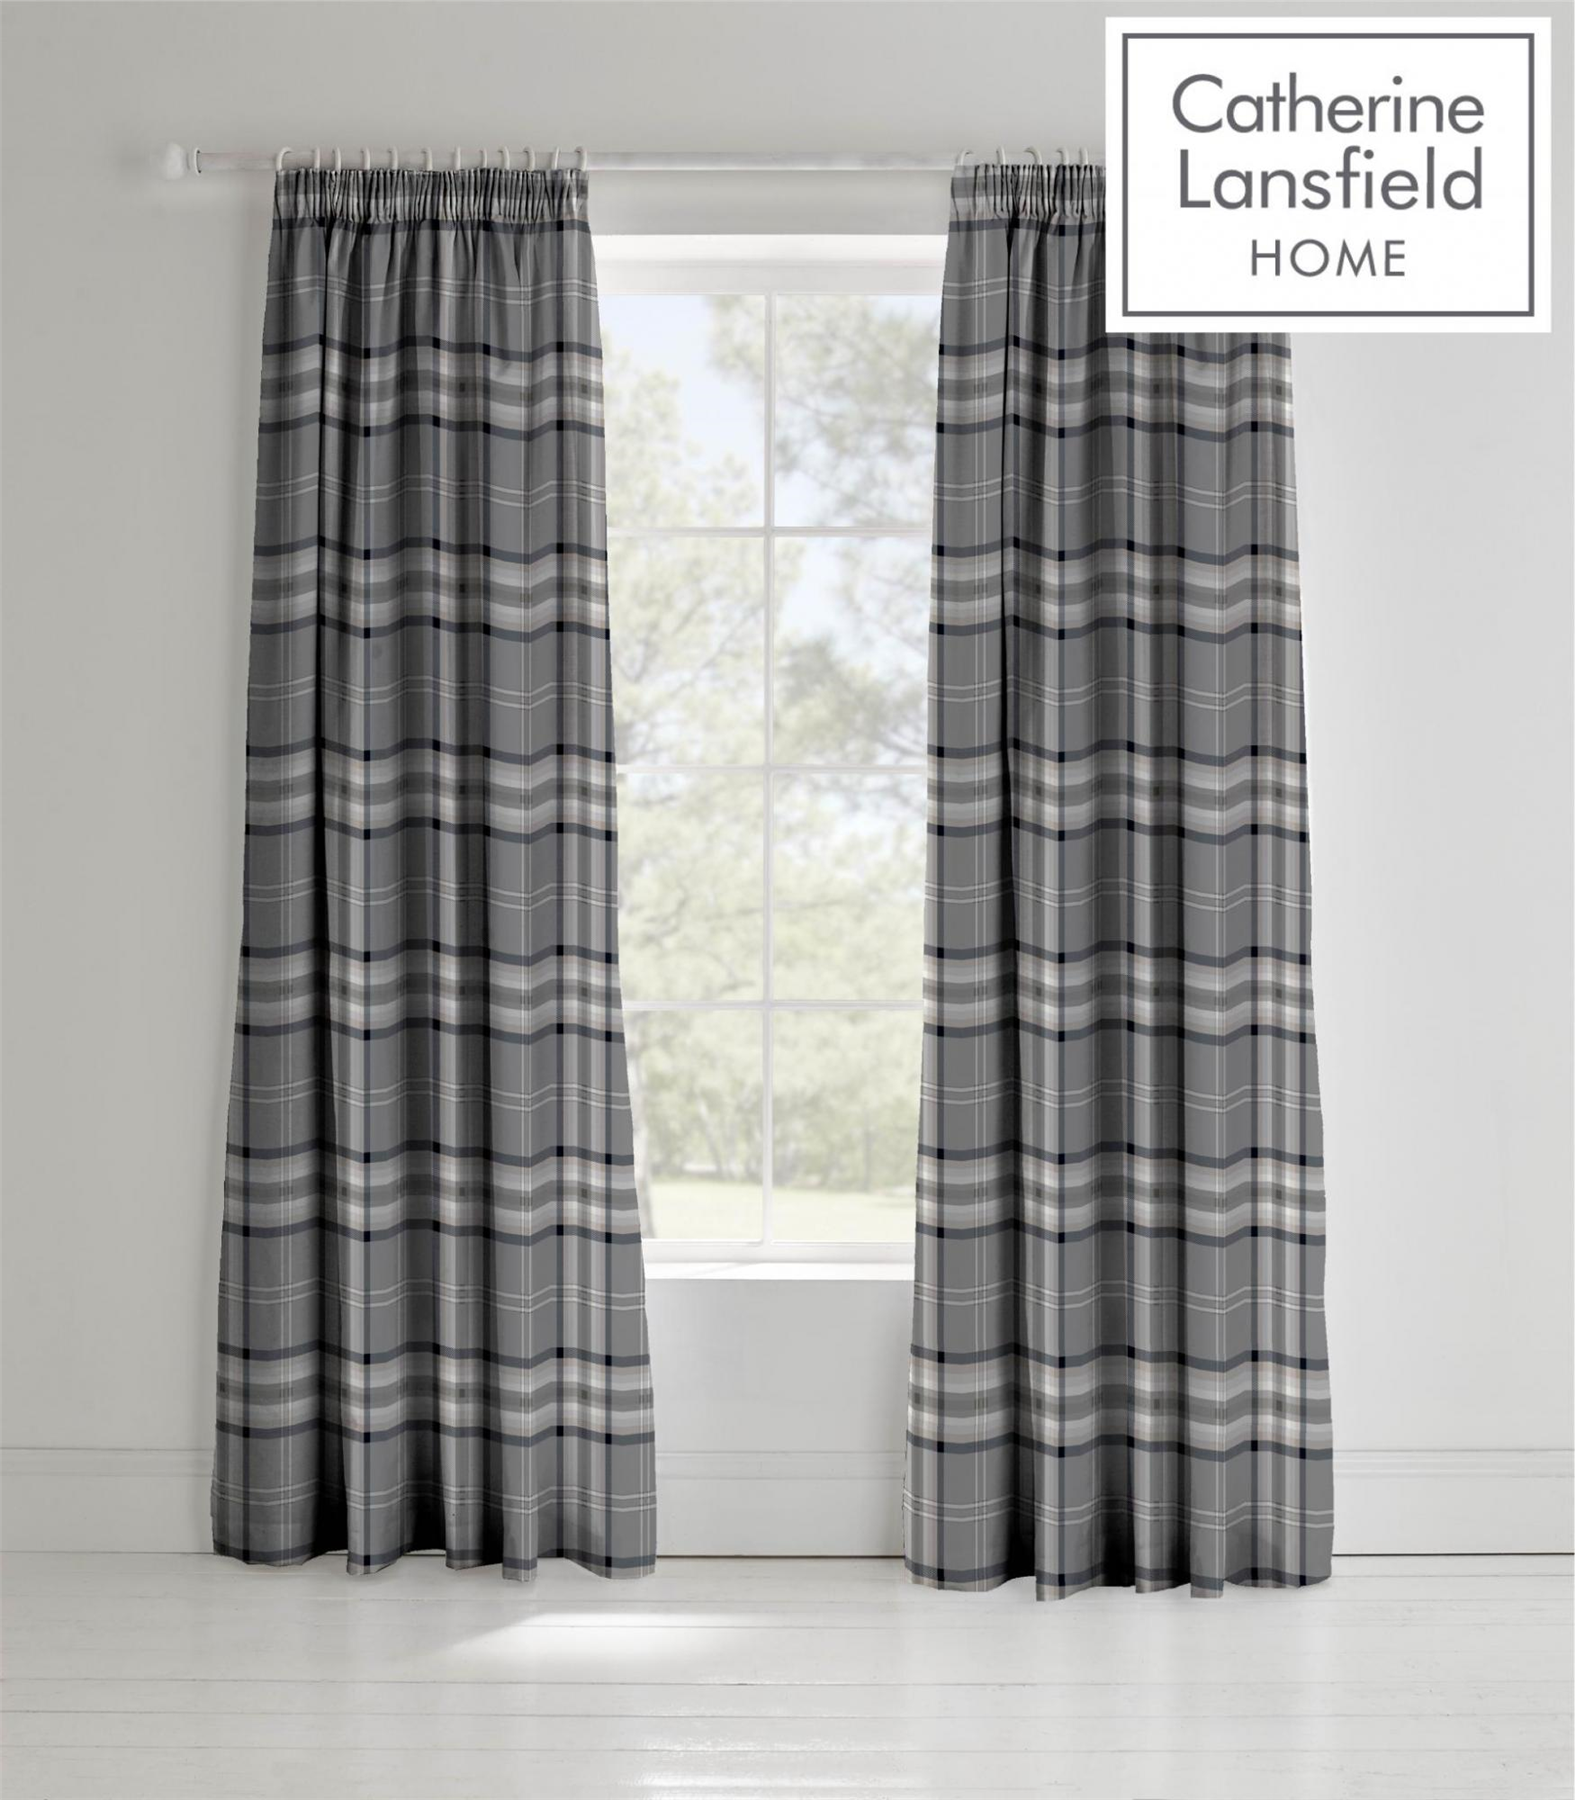 Catherine-Lansfield-Duvet-Set-Reversible-Check-Bedding-Charcoal-Pillows-Curtain thumbnail 3